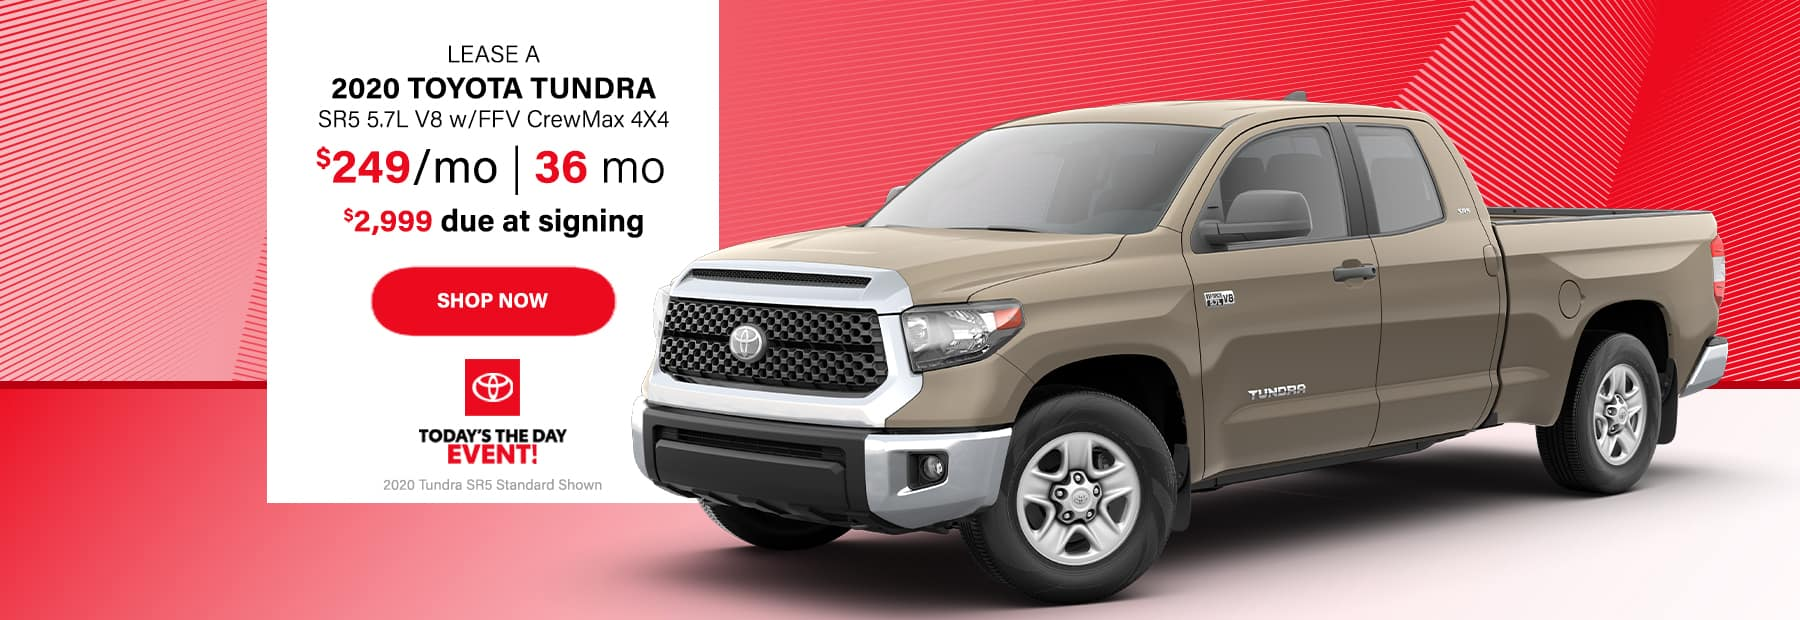 Lease a 2020 Toyota Tundra SR5 5.7L V8 w/FFV CrewMax 4x4 Pickup Truck for $249/mo. for 36 mos. with $2,999 down